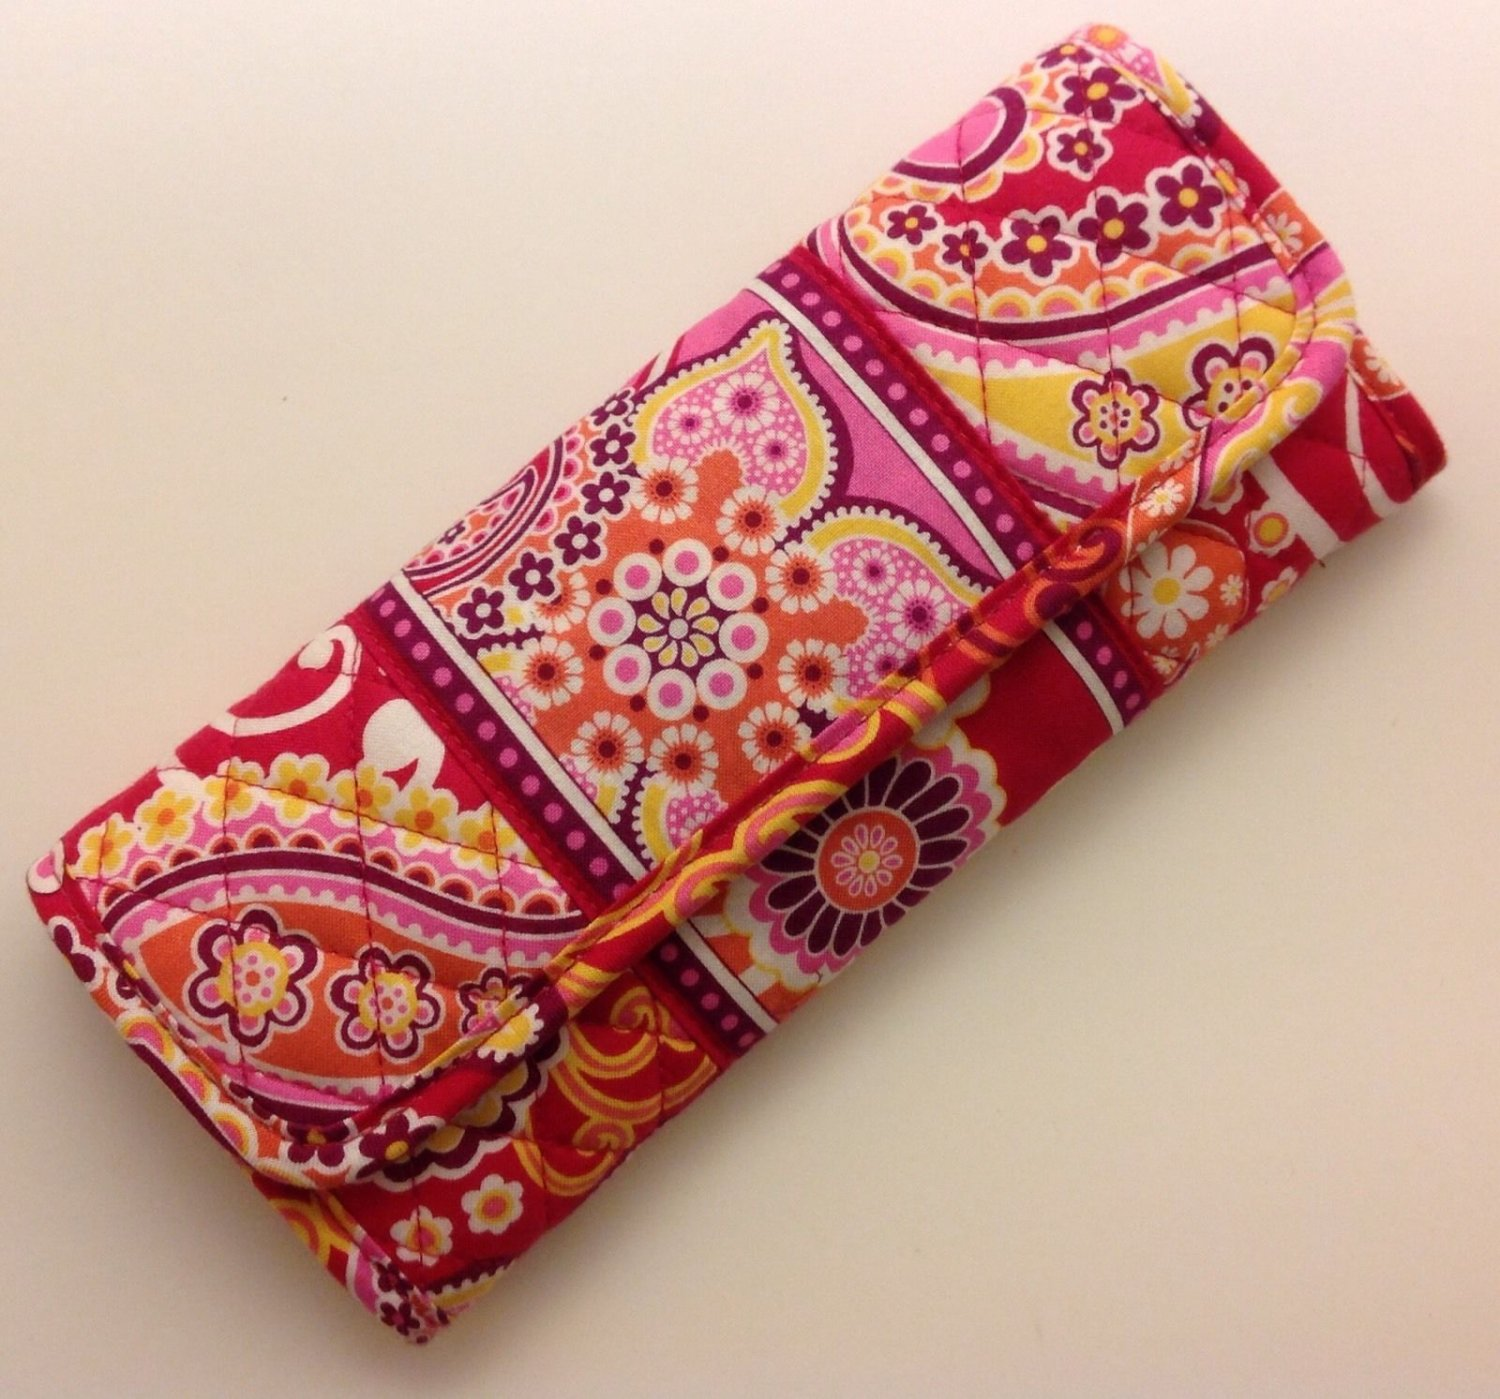 Vera Bradley Sleek Wallet Rasberry Fizz travel organizer convertible crossbody clutch NWT Retired